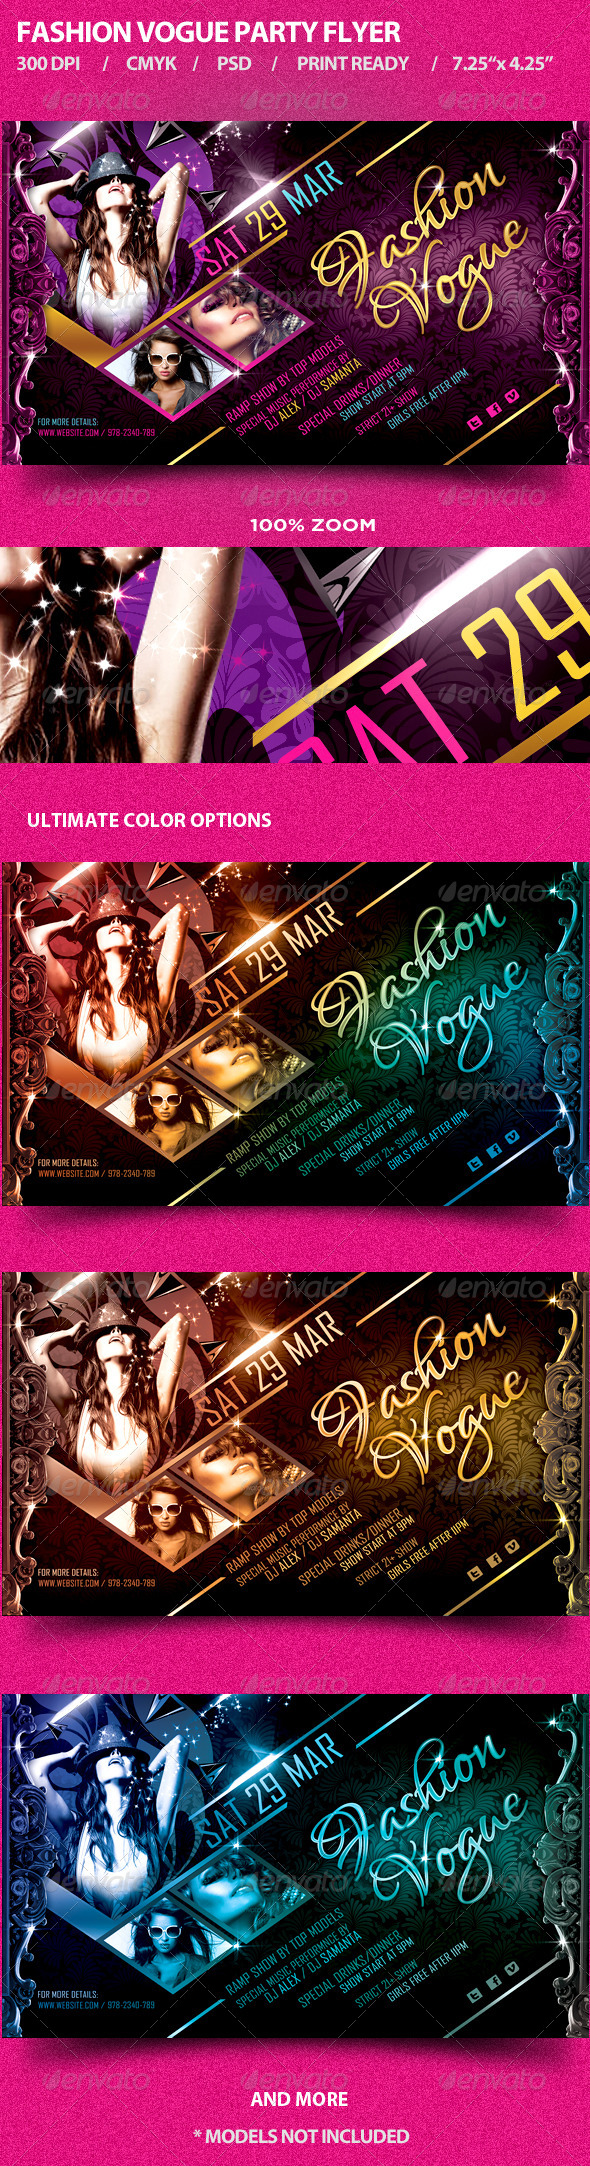 Fashion Vogue Party Flyer - Clubs & Parties Events